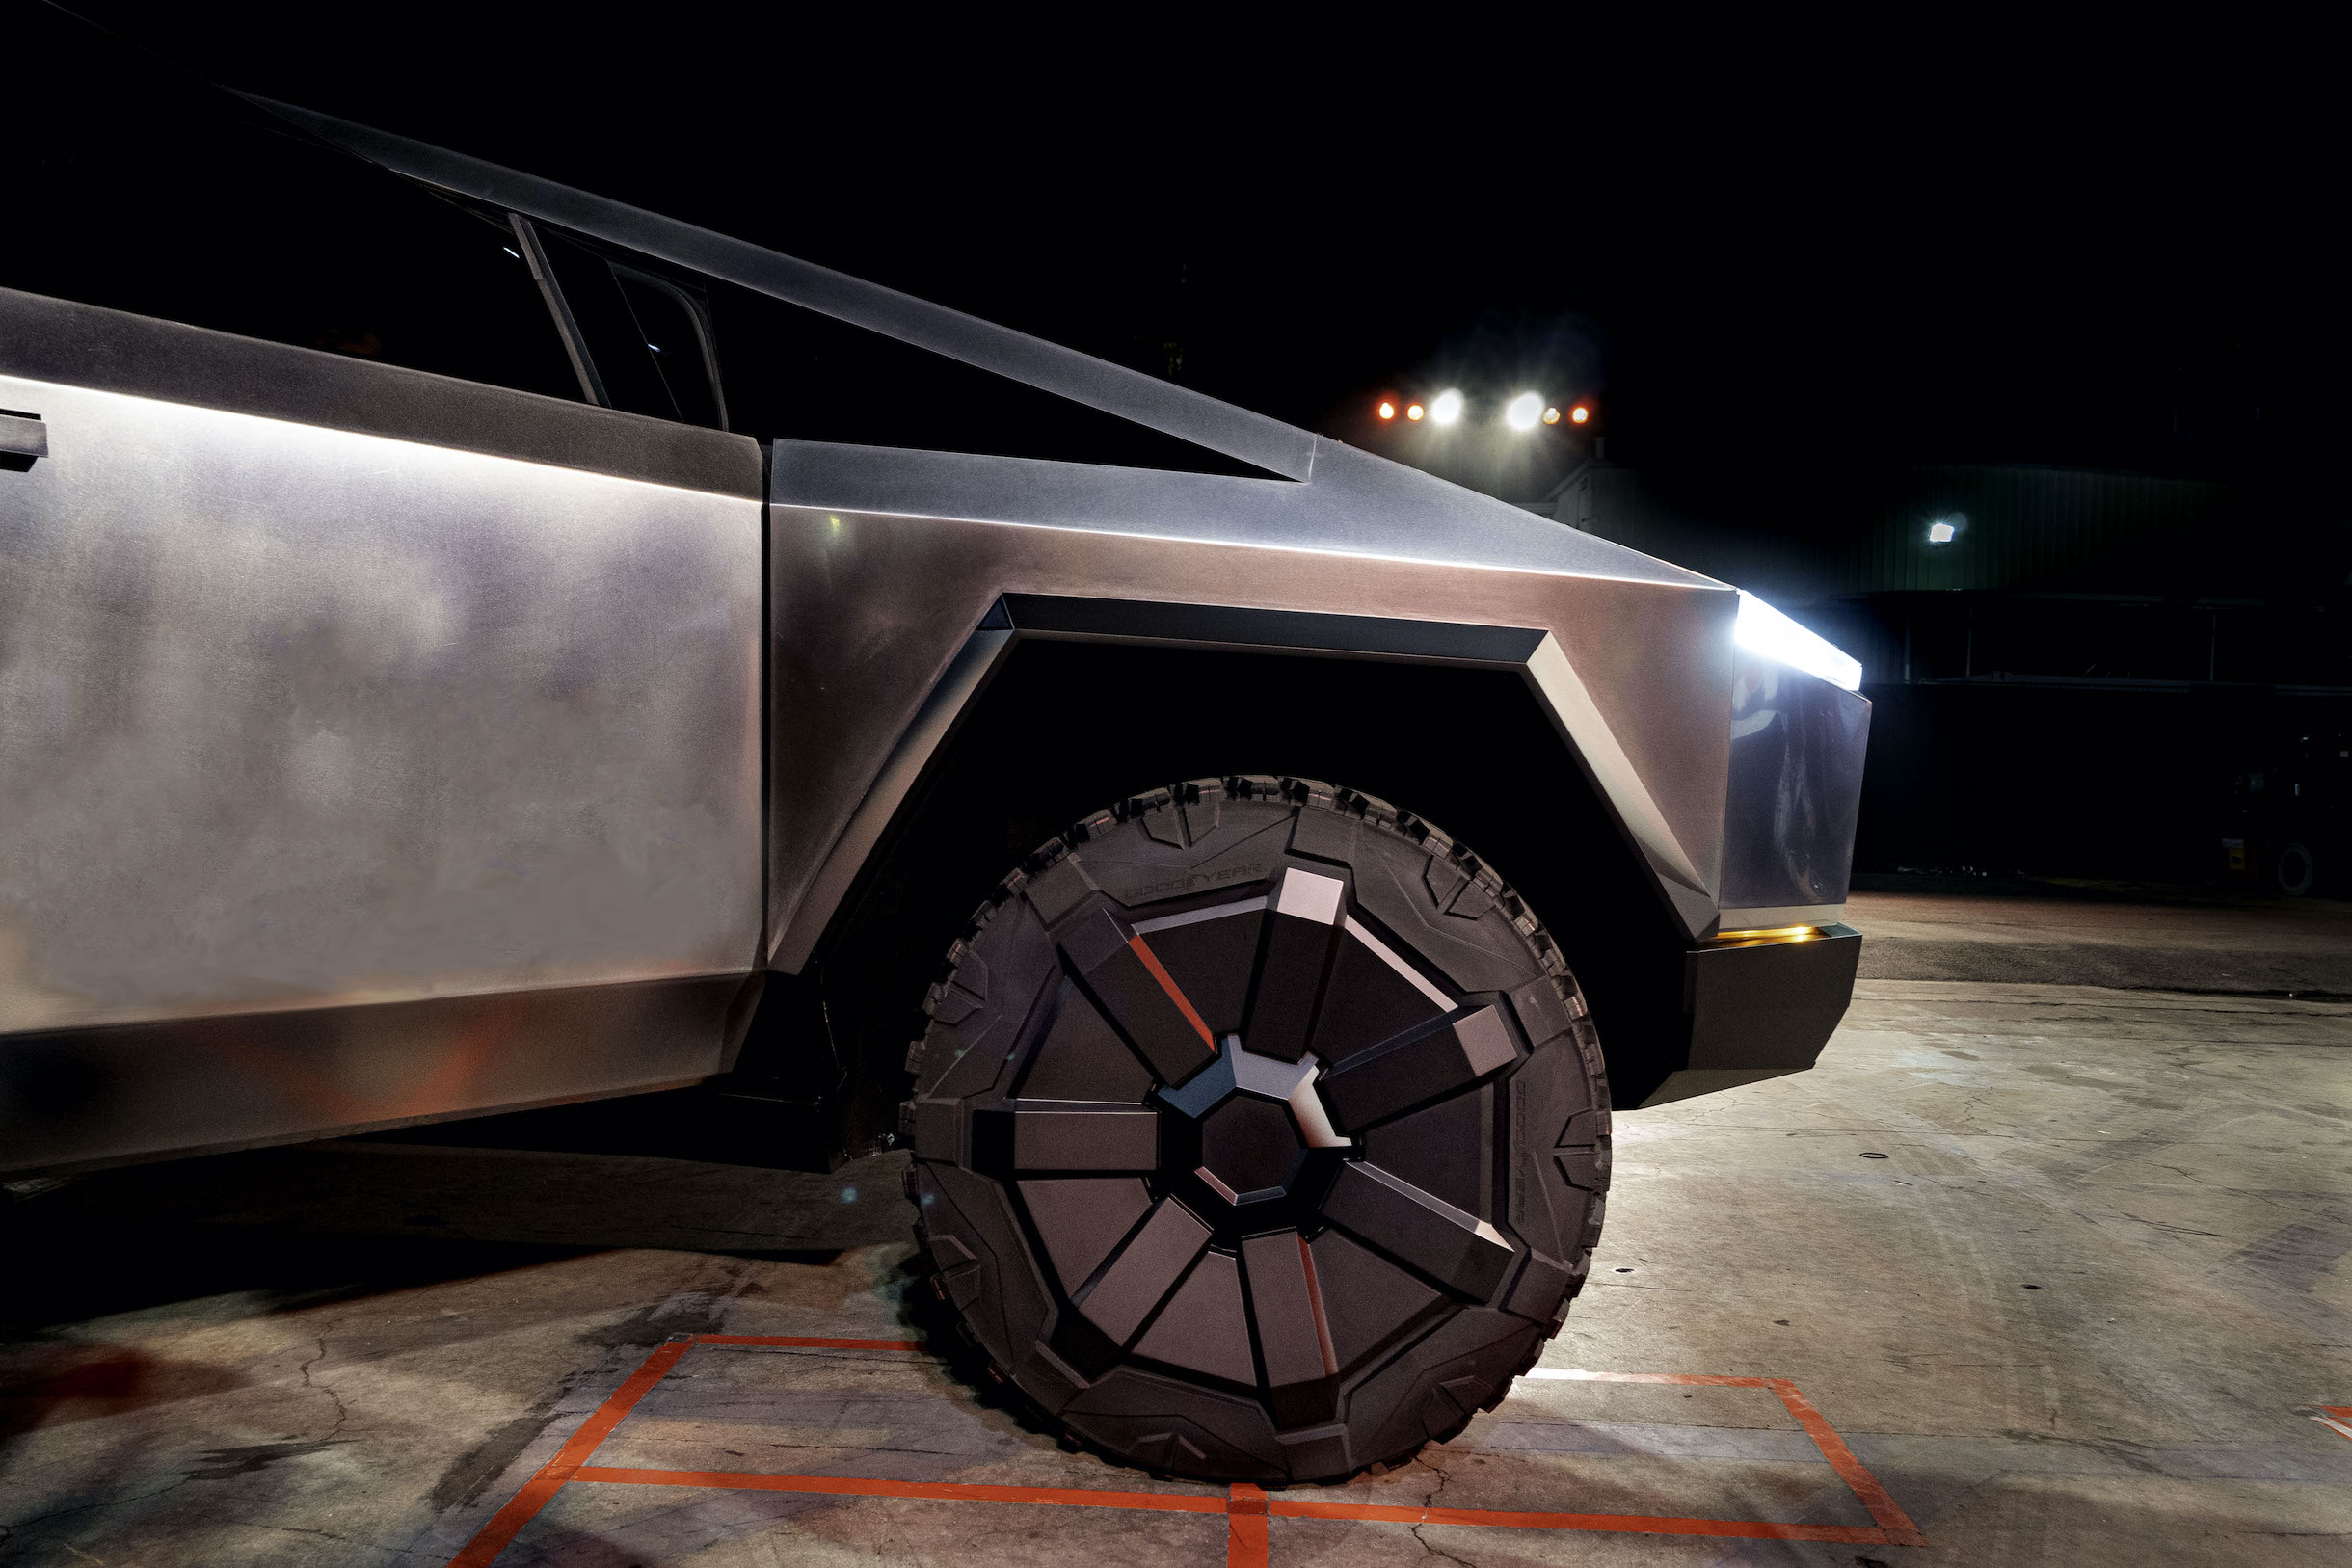 Tesla S Cybertruck Will Set The Trend For Future Pickup Designs Like It Or Not